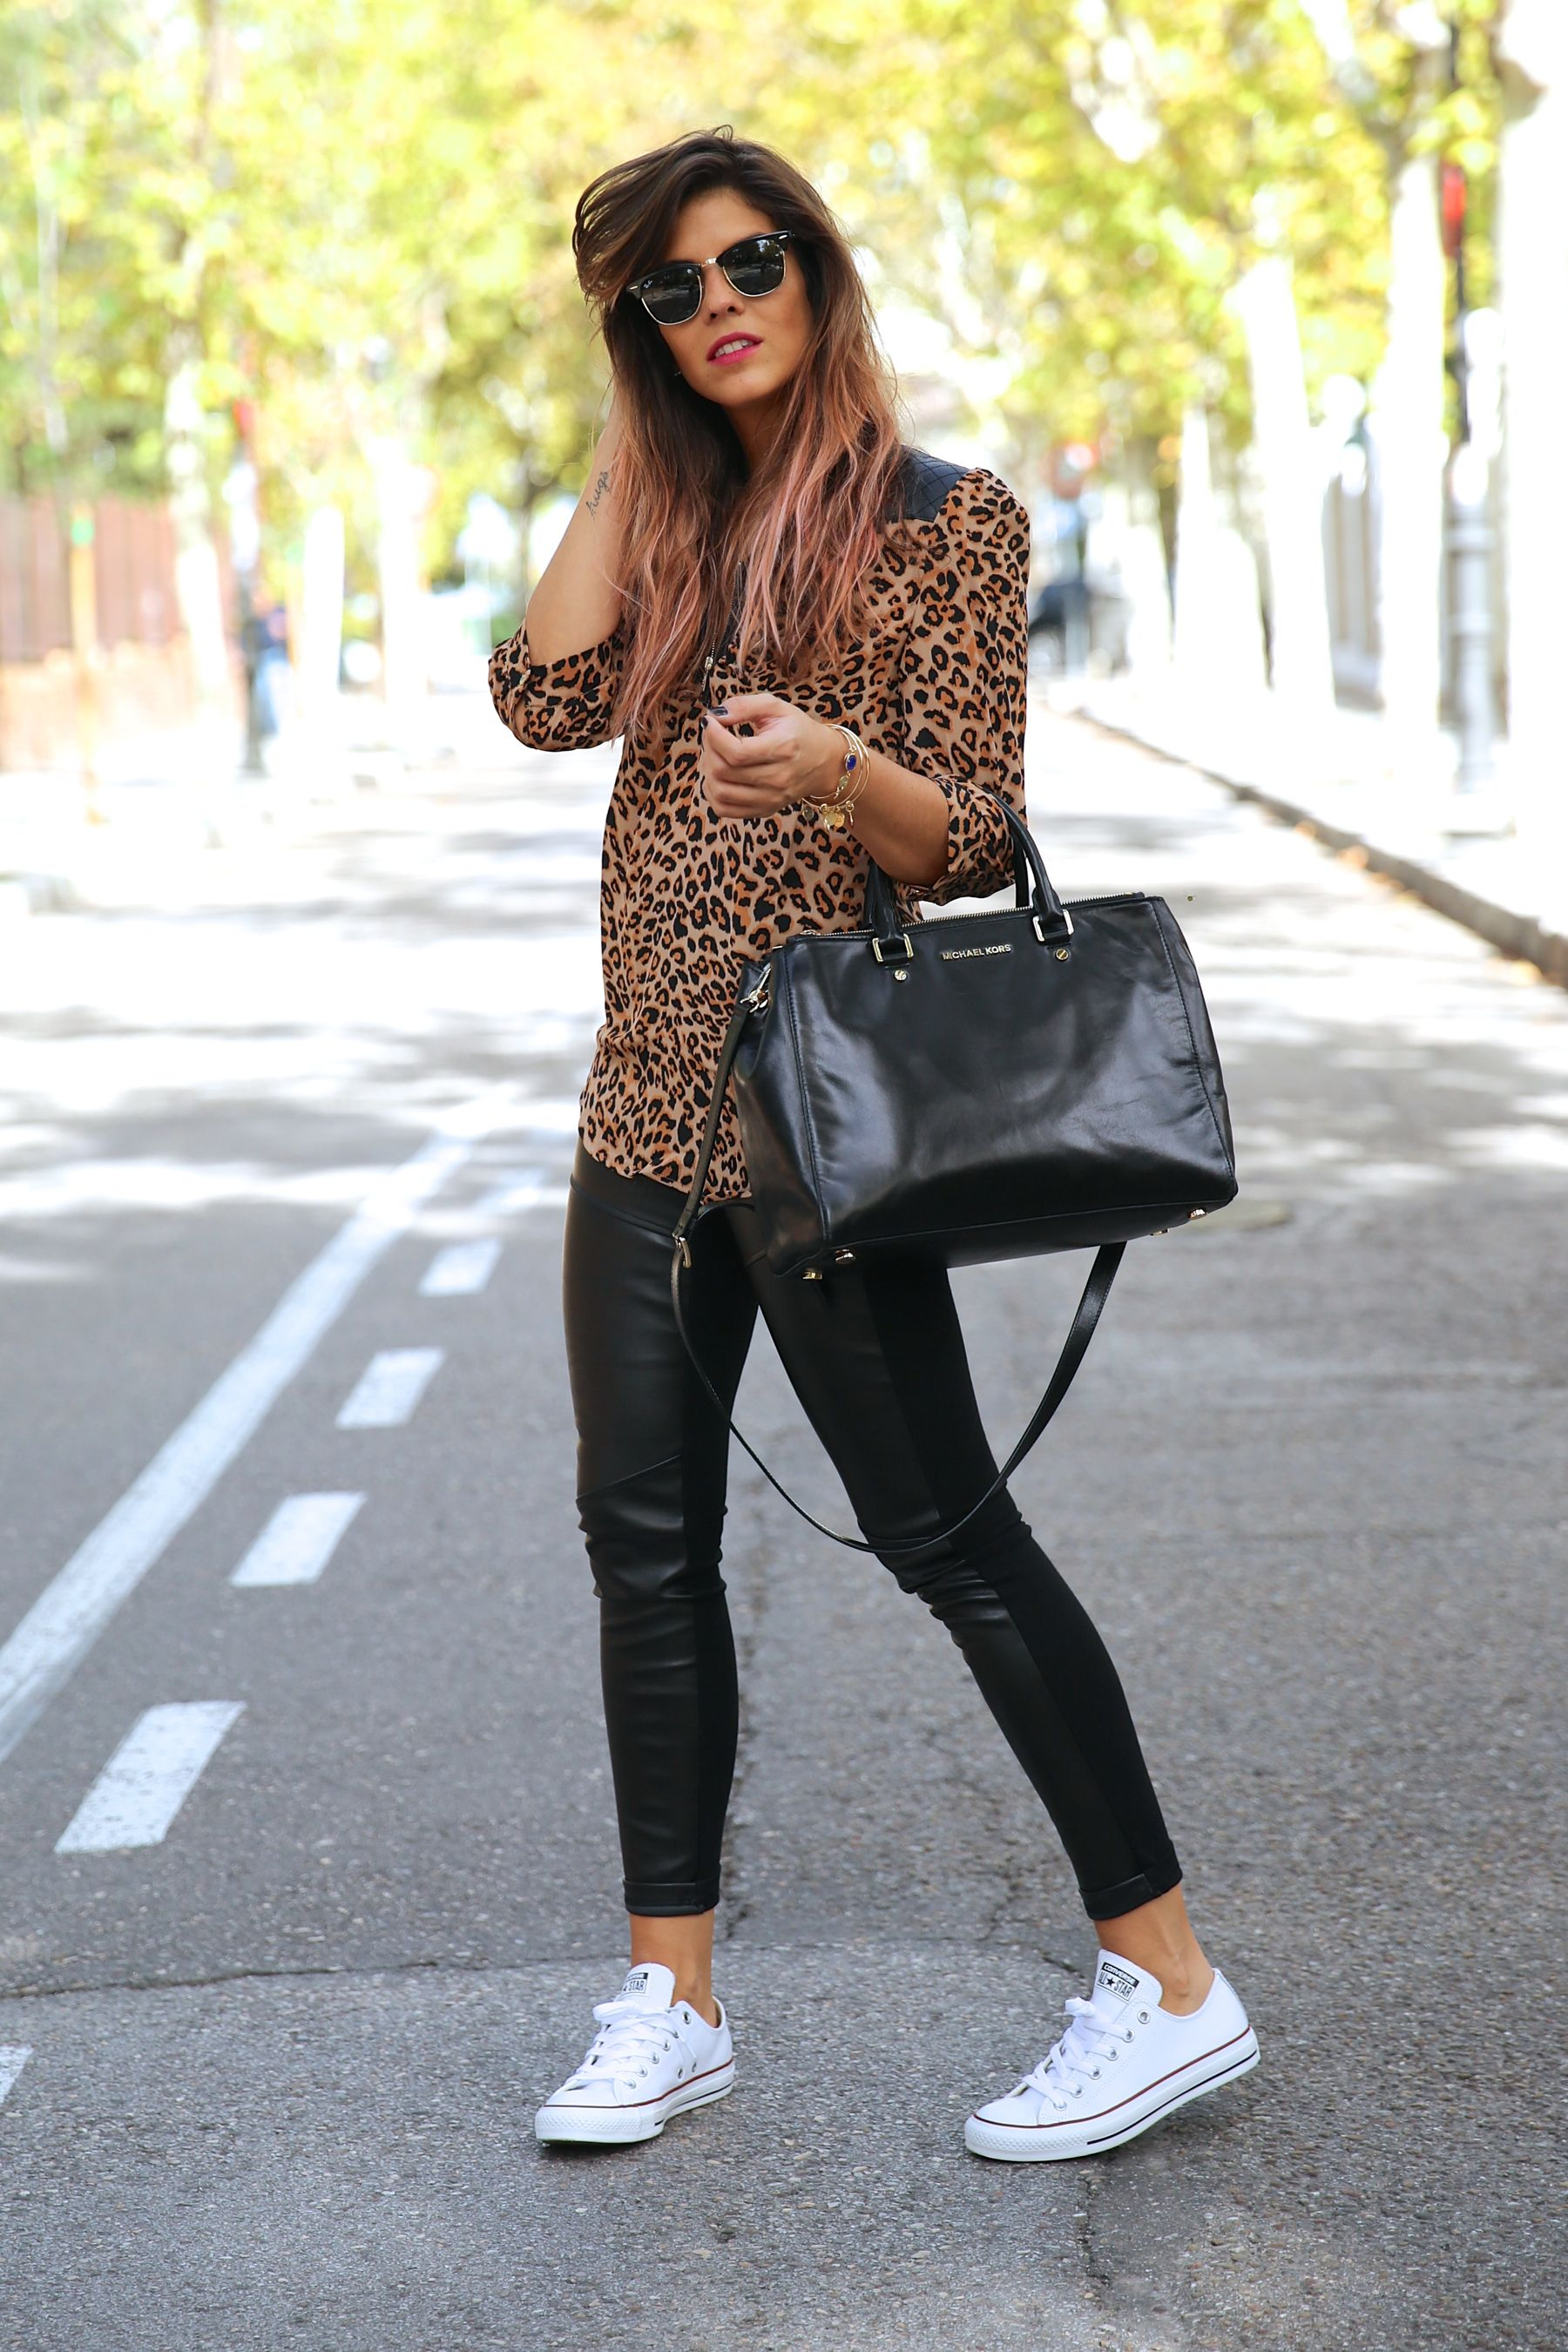 trendy_taste-look-outfit-street_style-ootd-blog-blogger-fashion_spain-moda_españa-leo_print-leopardo-converse-all_star-michael_kors-leggings-clubmaster-14